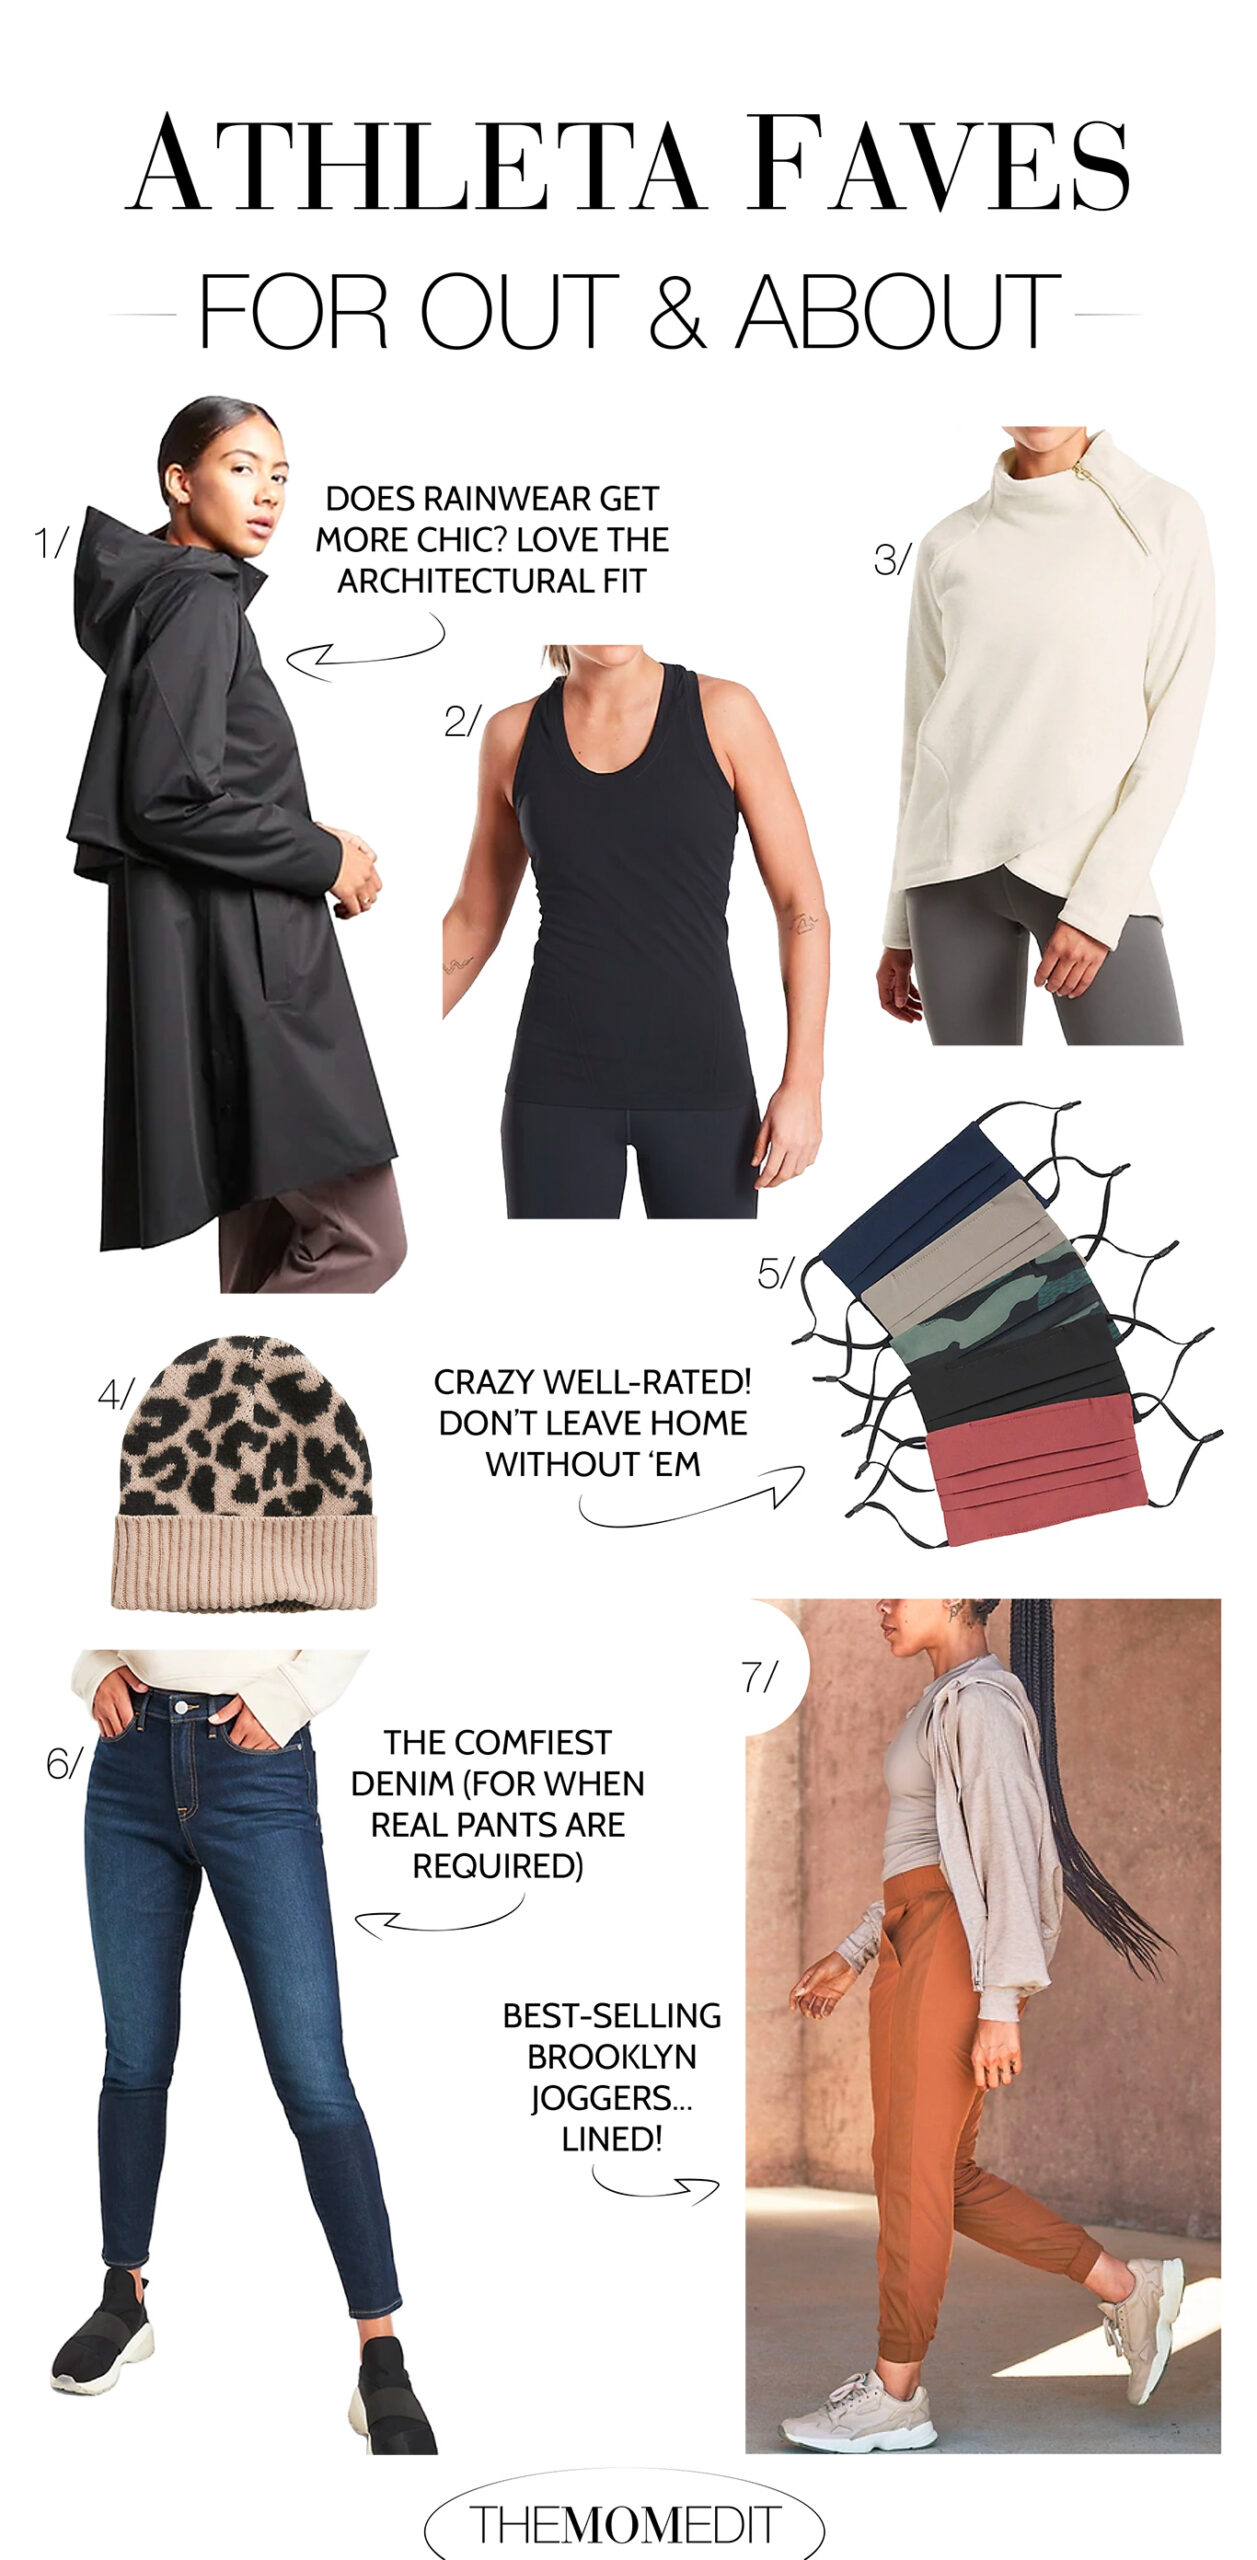 It's Athleta capsule wardrobe refresh time. We're shopping comfy, high-performing activewear & loungewear that takes us from Zoom to yoga to errands to the couch -- & back -- all w/ a nod to sustainability.